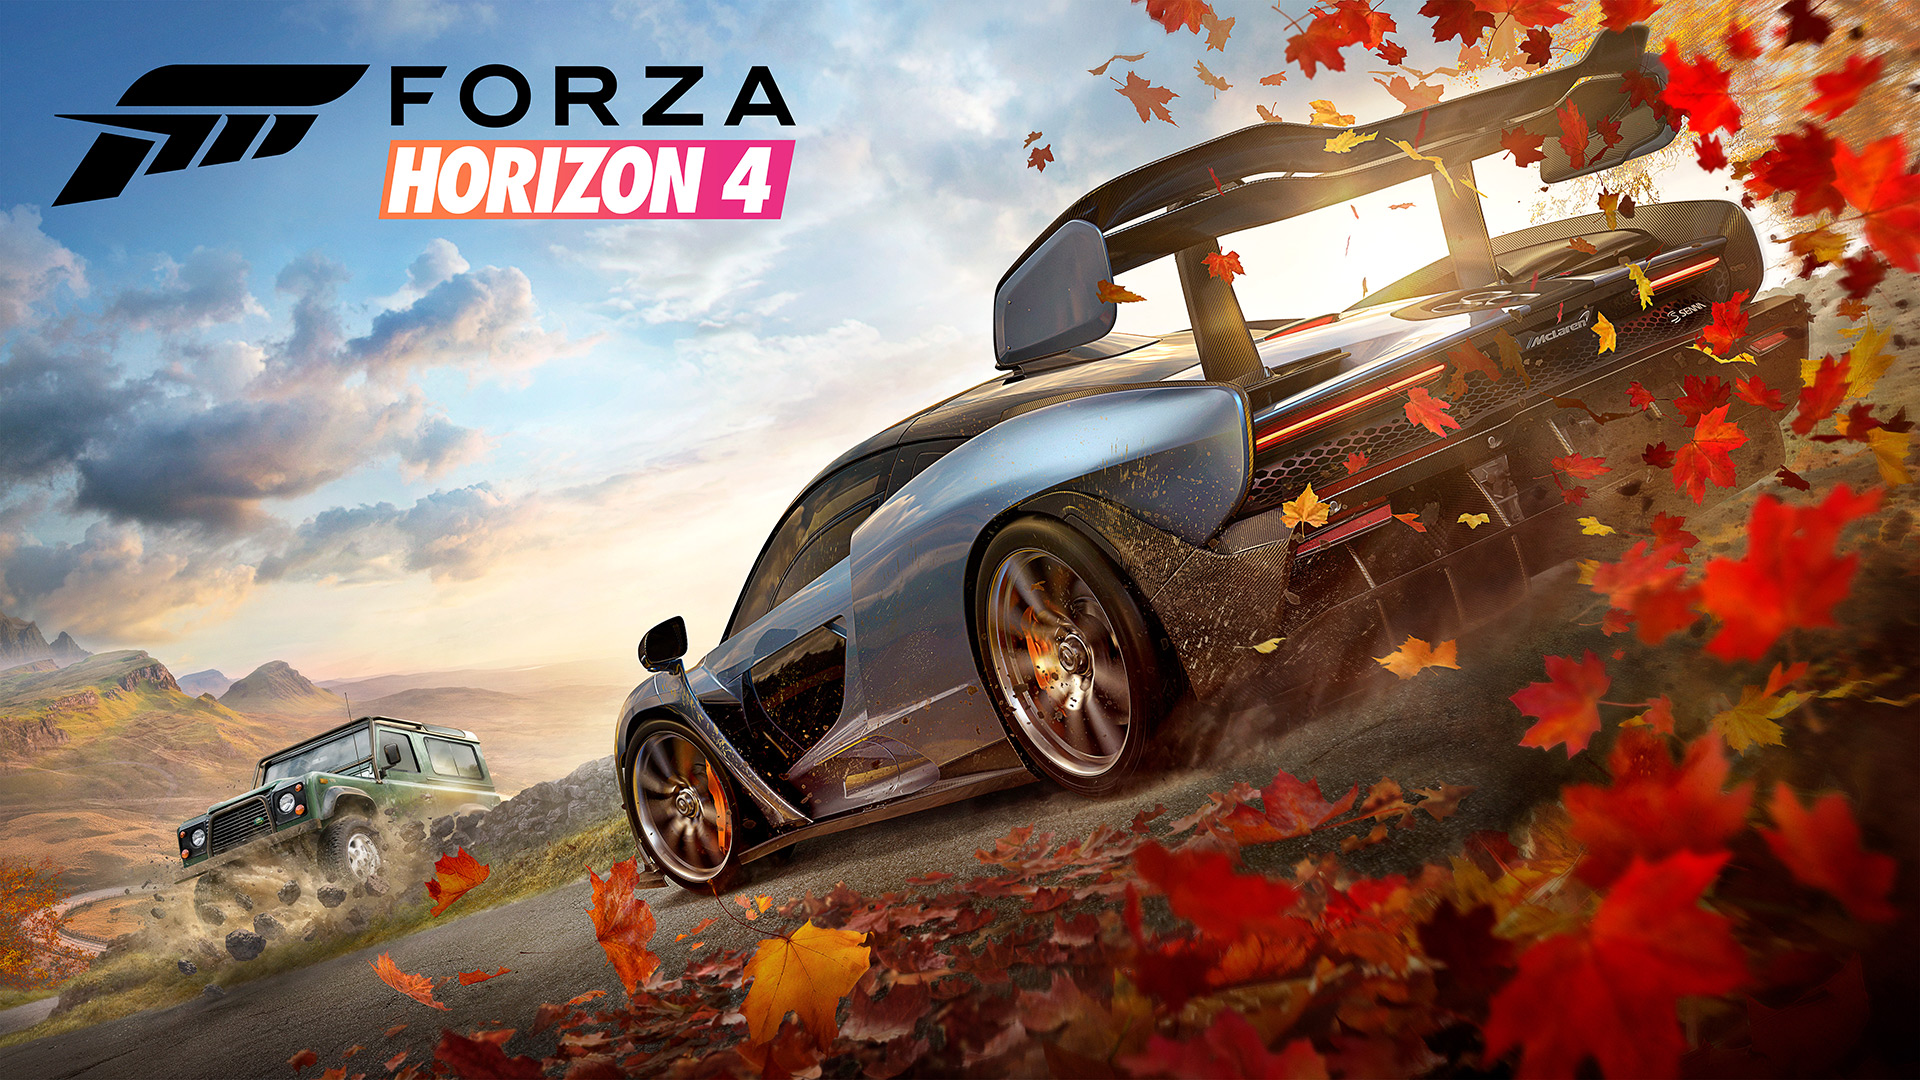 Forza horizon 4 review 01